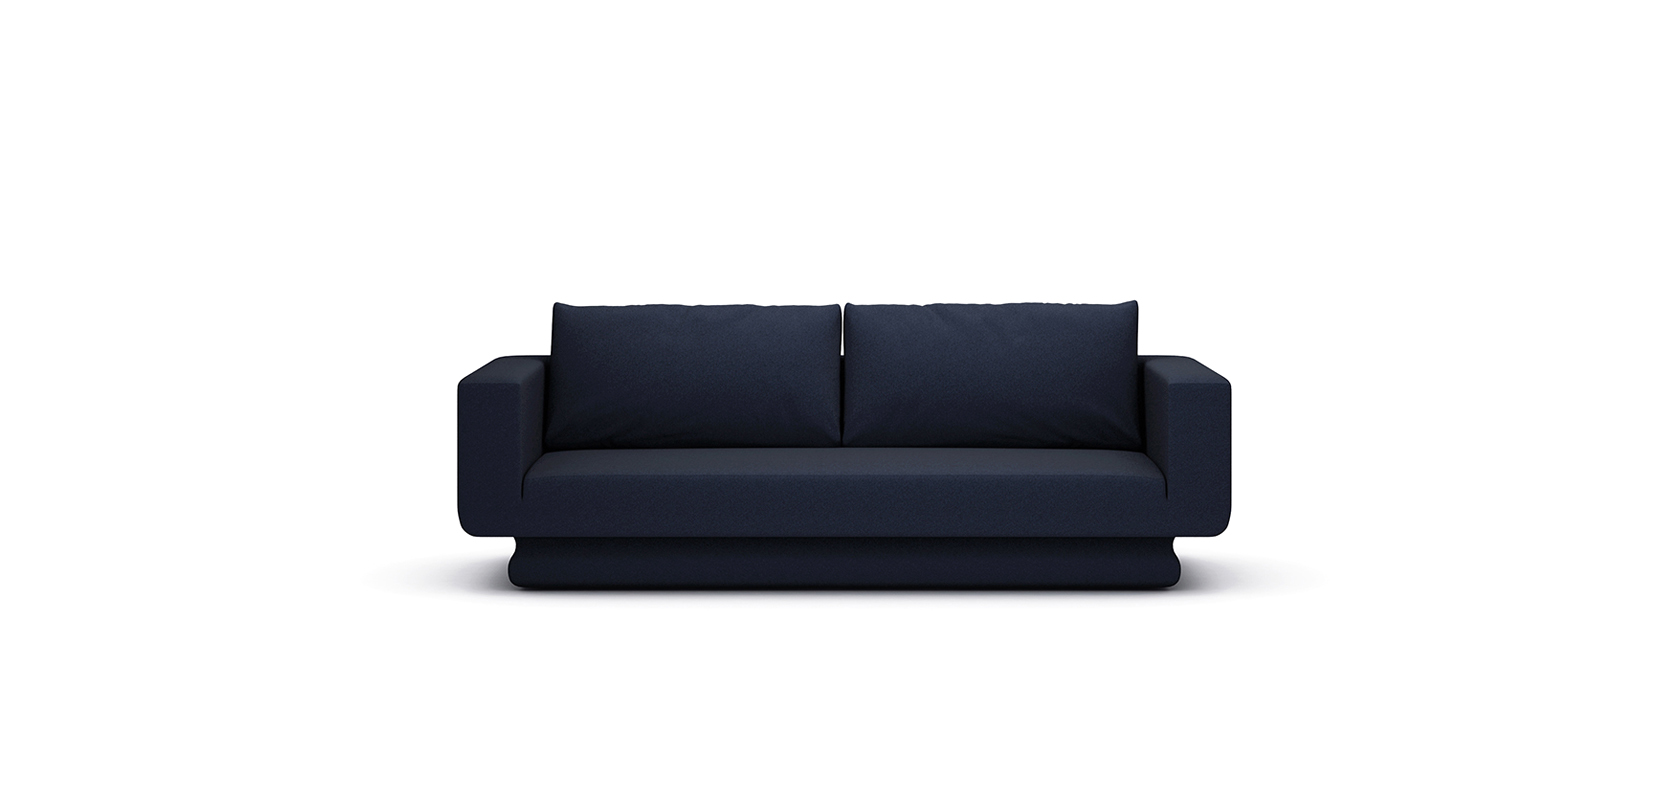 BAY SOFA BRAND:  FRANK CHOU  WEB:  www.frankchou.com This sofa is made of wool fabric. The special arc outline of its base has an oriental sense of beauty. The streamlined base part of the sofa is derived from traditional ceramic utensil, which expresses timeless artistry.